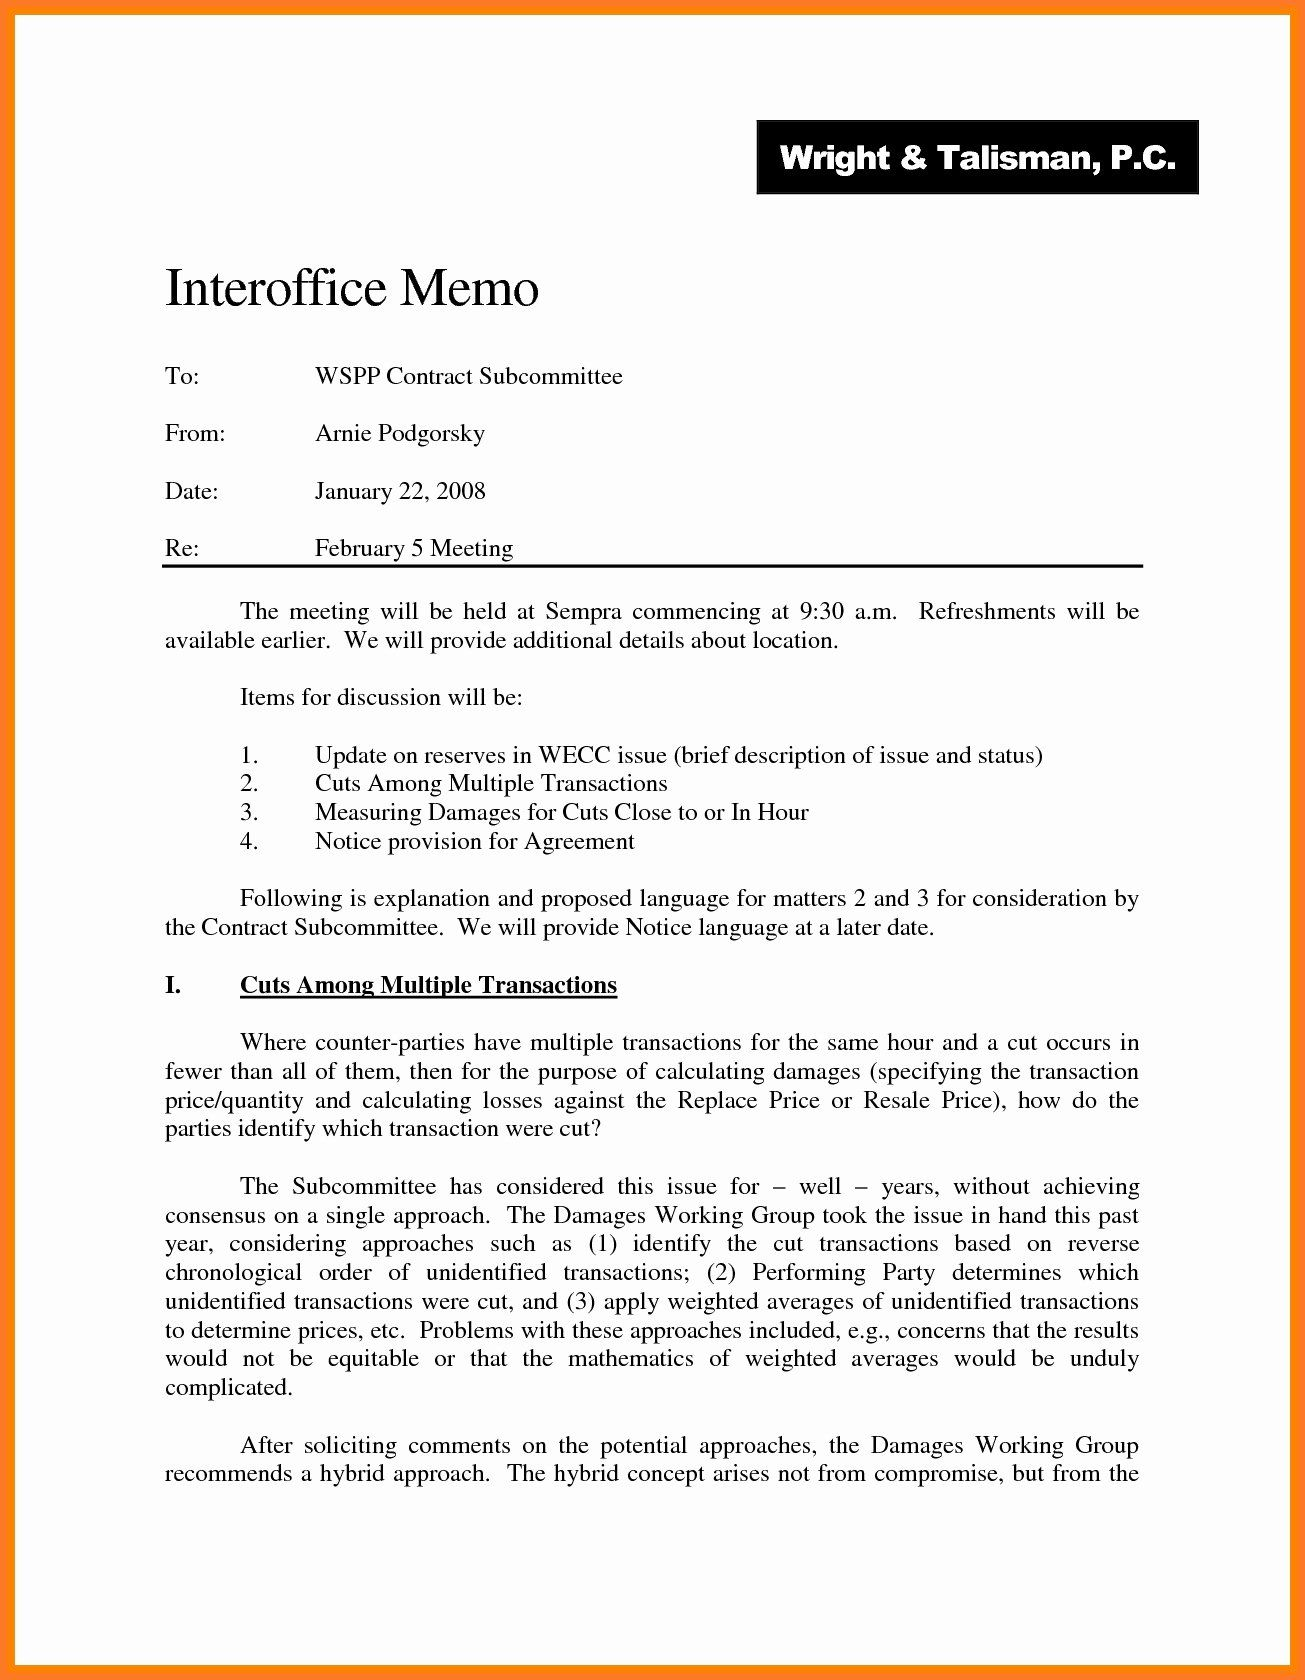 Legal Memo Writing Help: Office Memo Format and Explanation